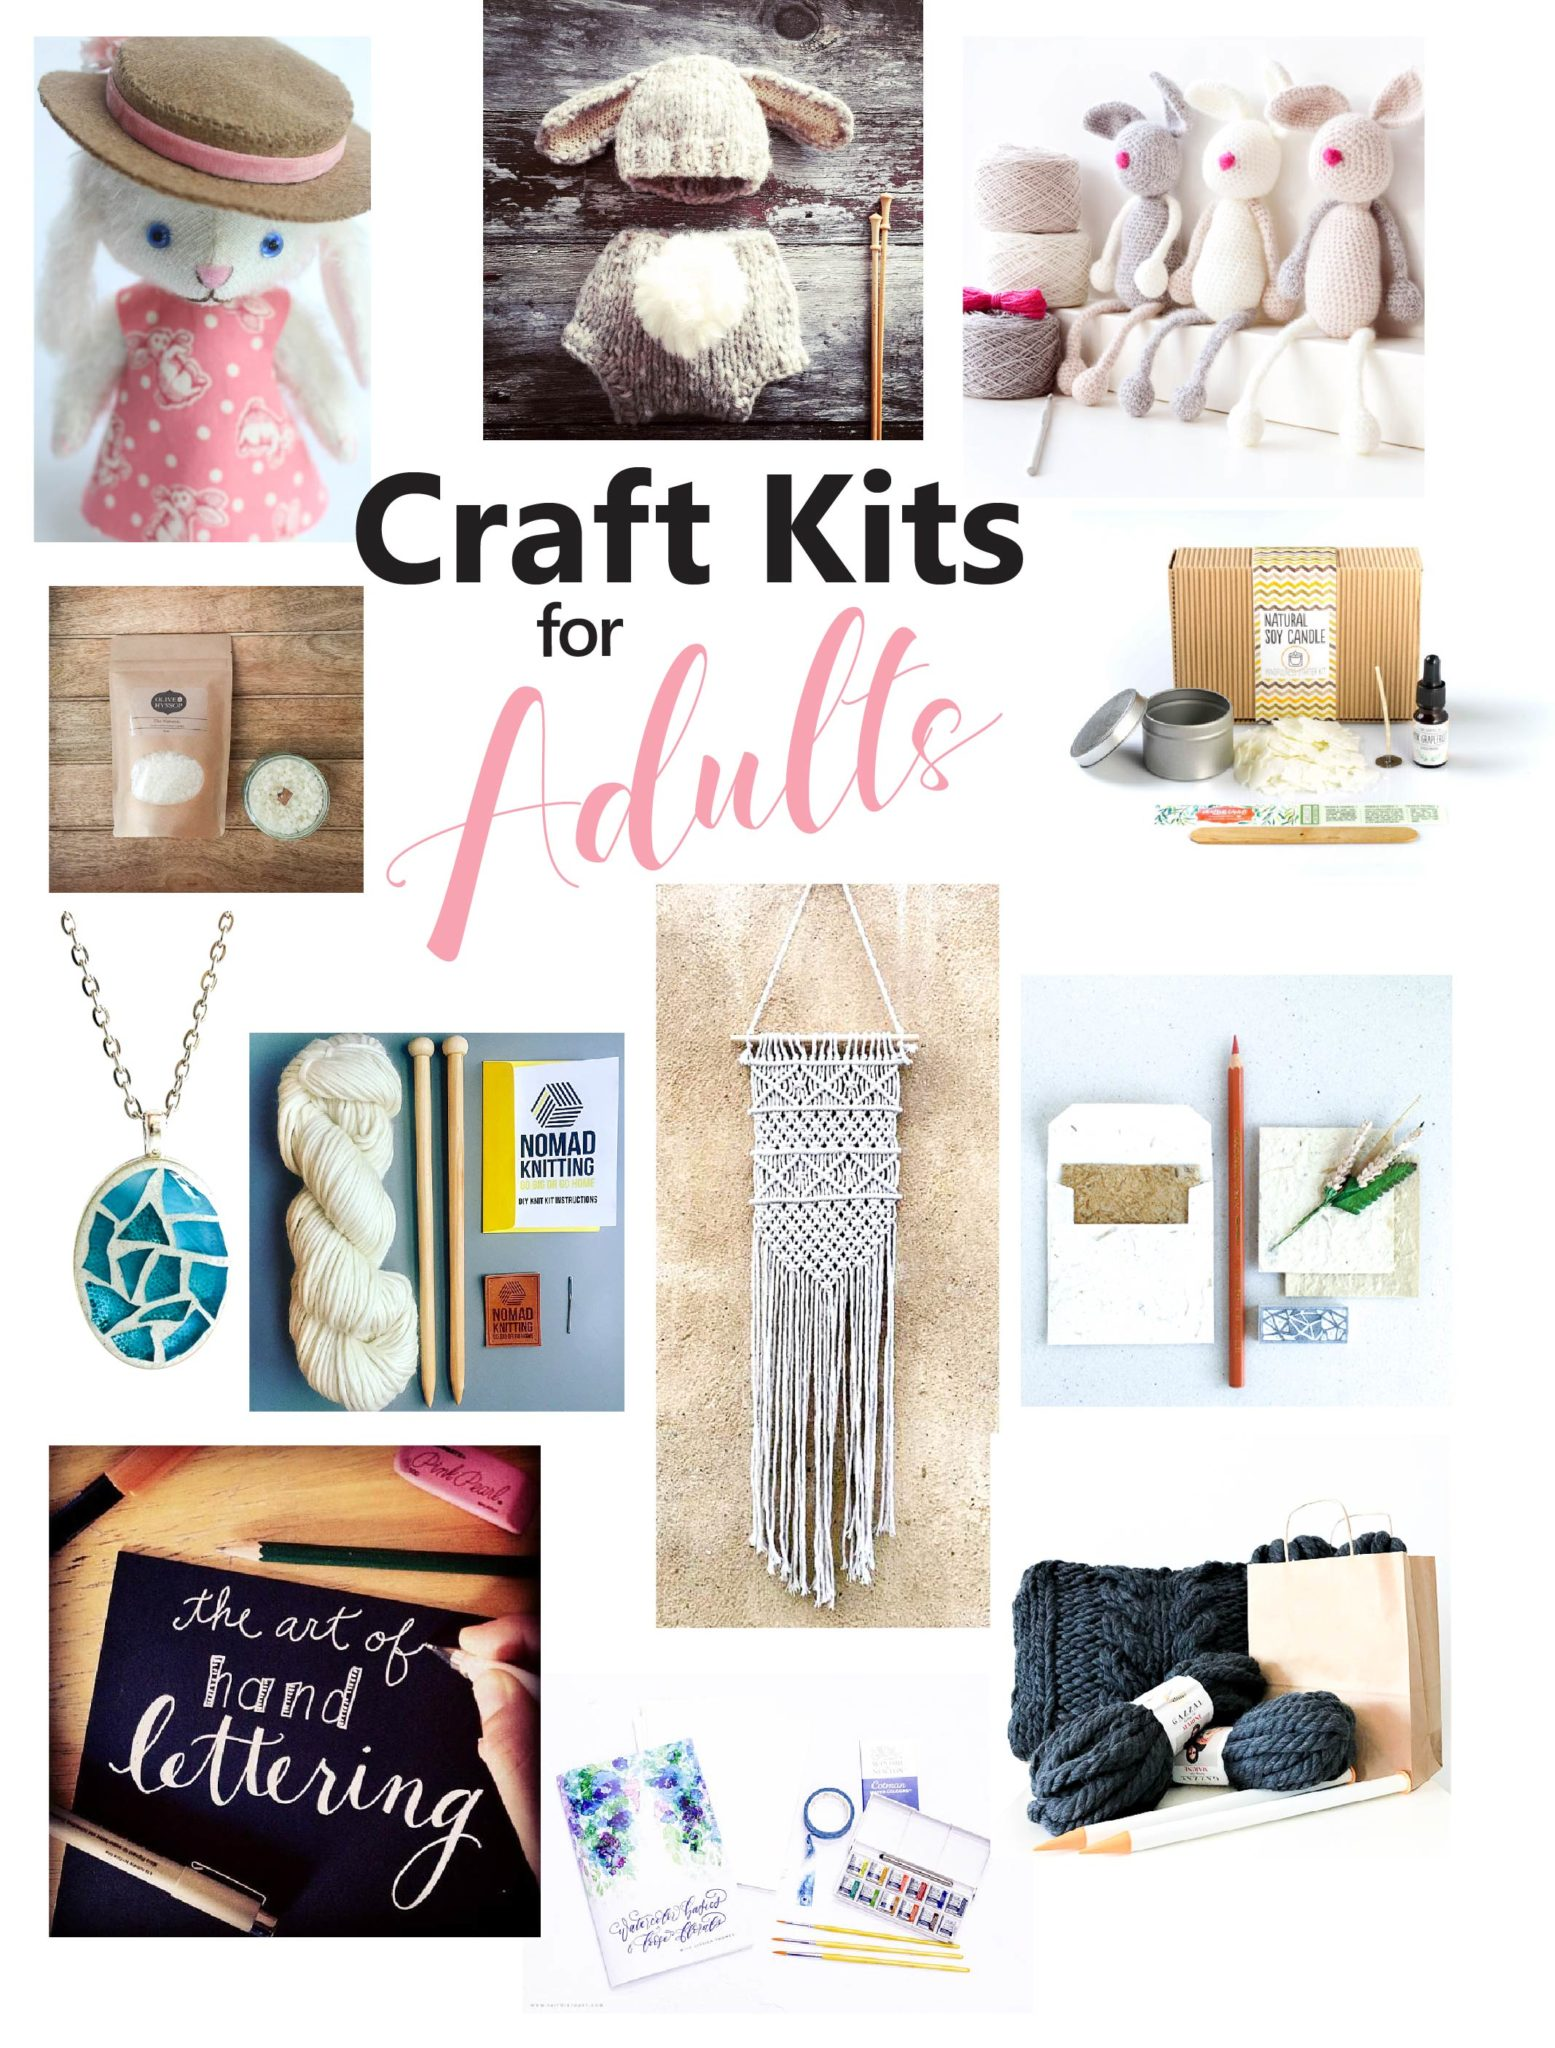 The Best Craft Kits for Adults – Sustain My Craft Habit